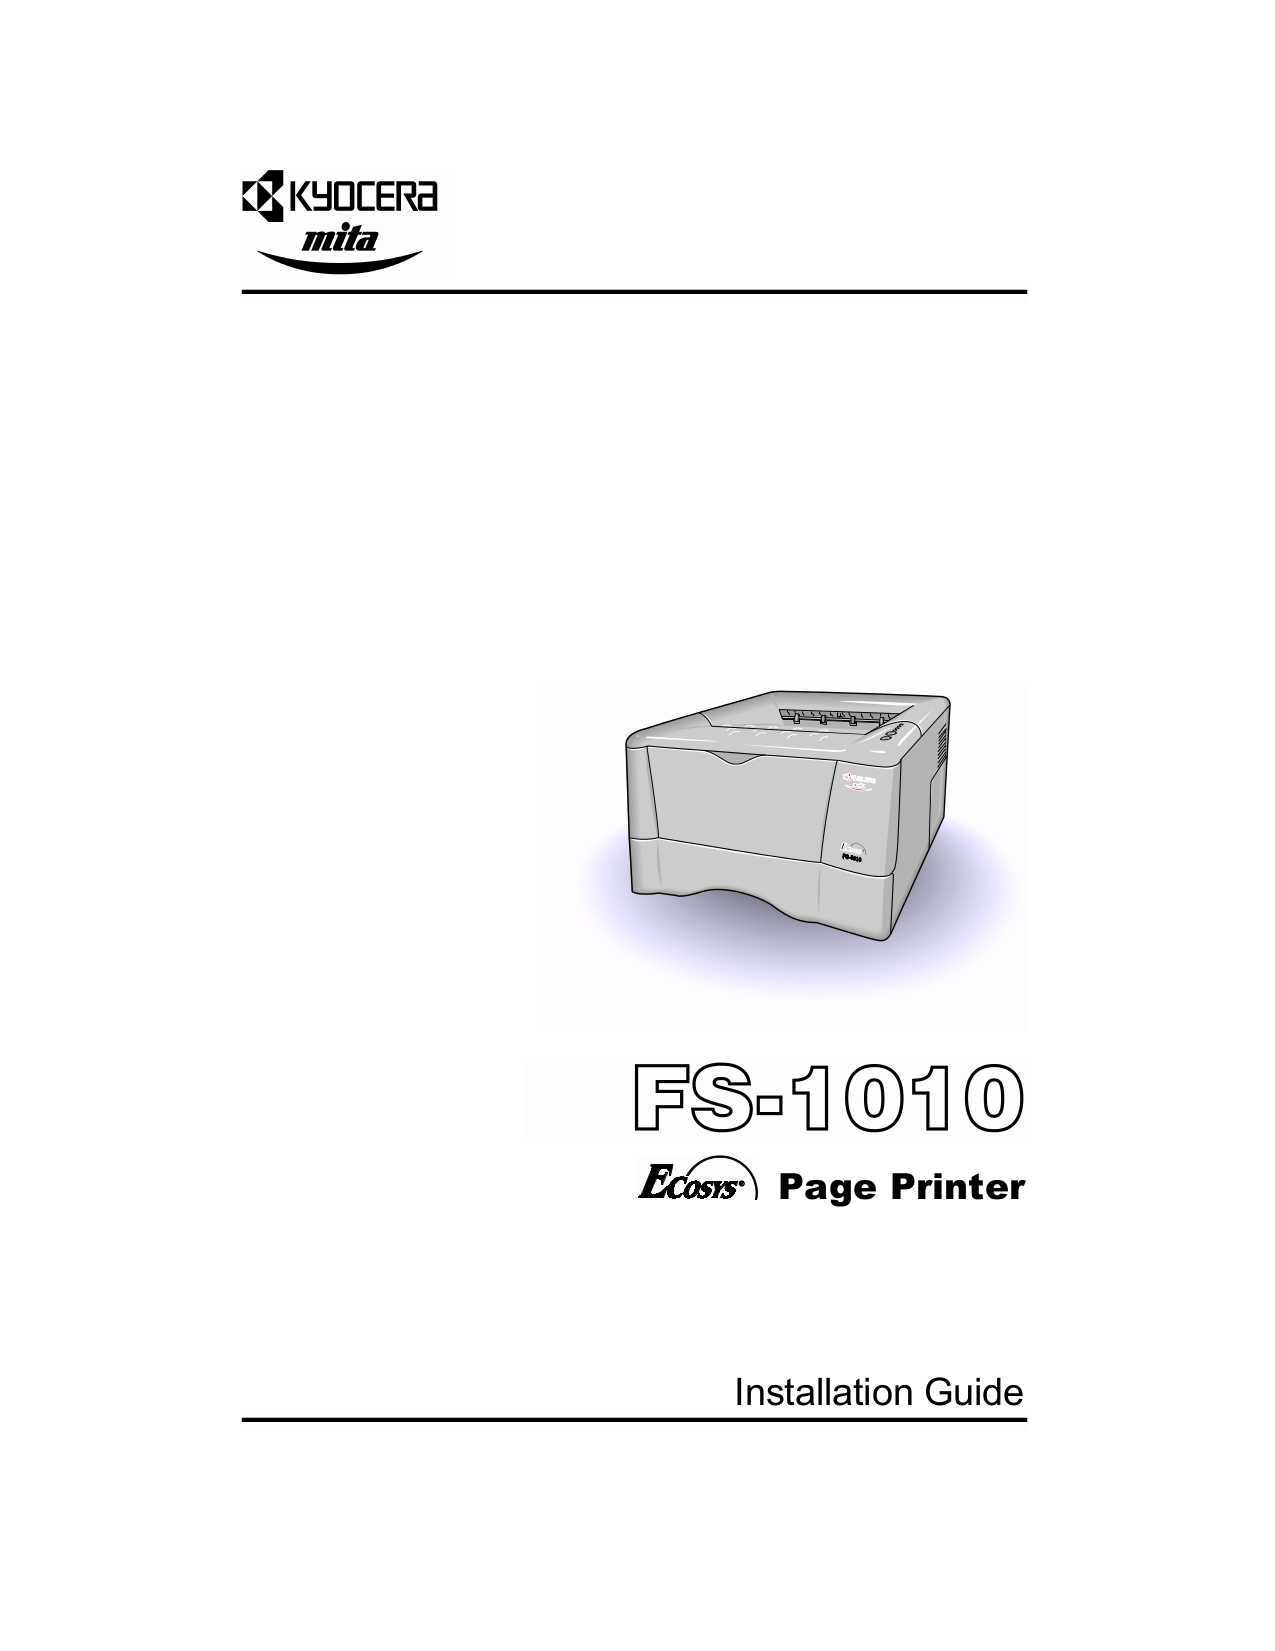 download free pdf for kyocera fs 1010 printer manual rh umlib com kyocera mita fs 1010 kx manual kyocera ecosys fs-1010 manual